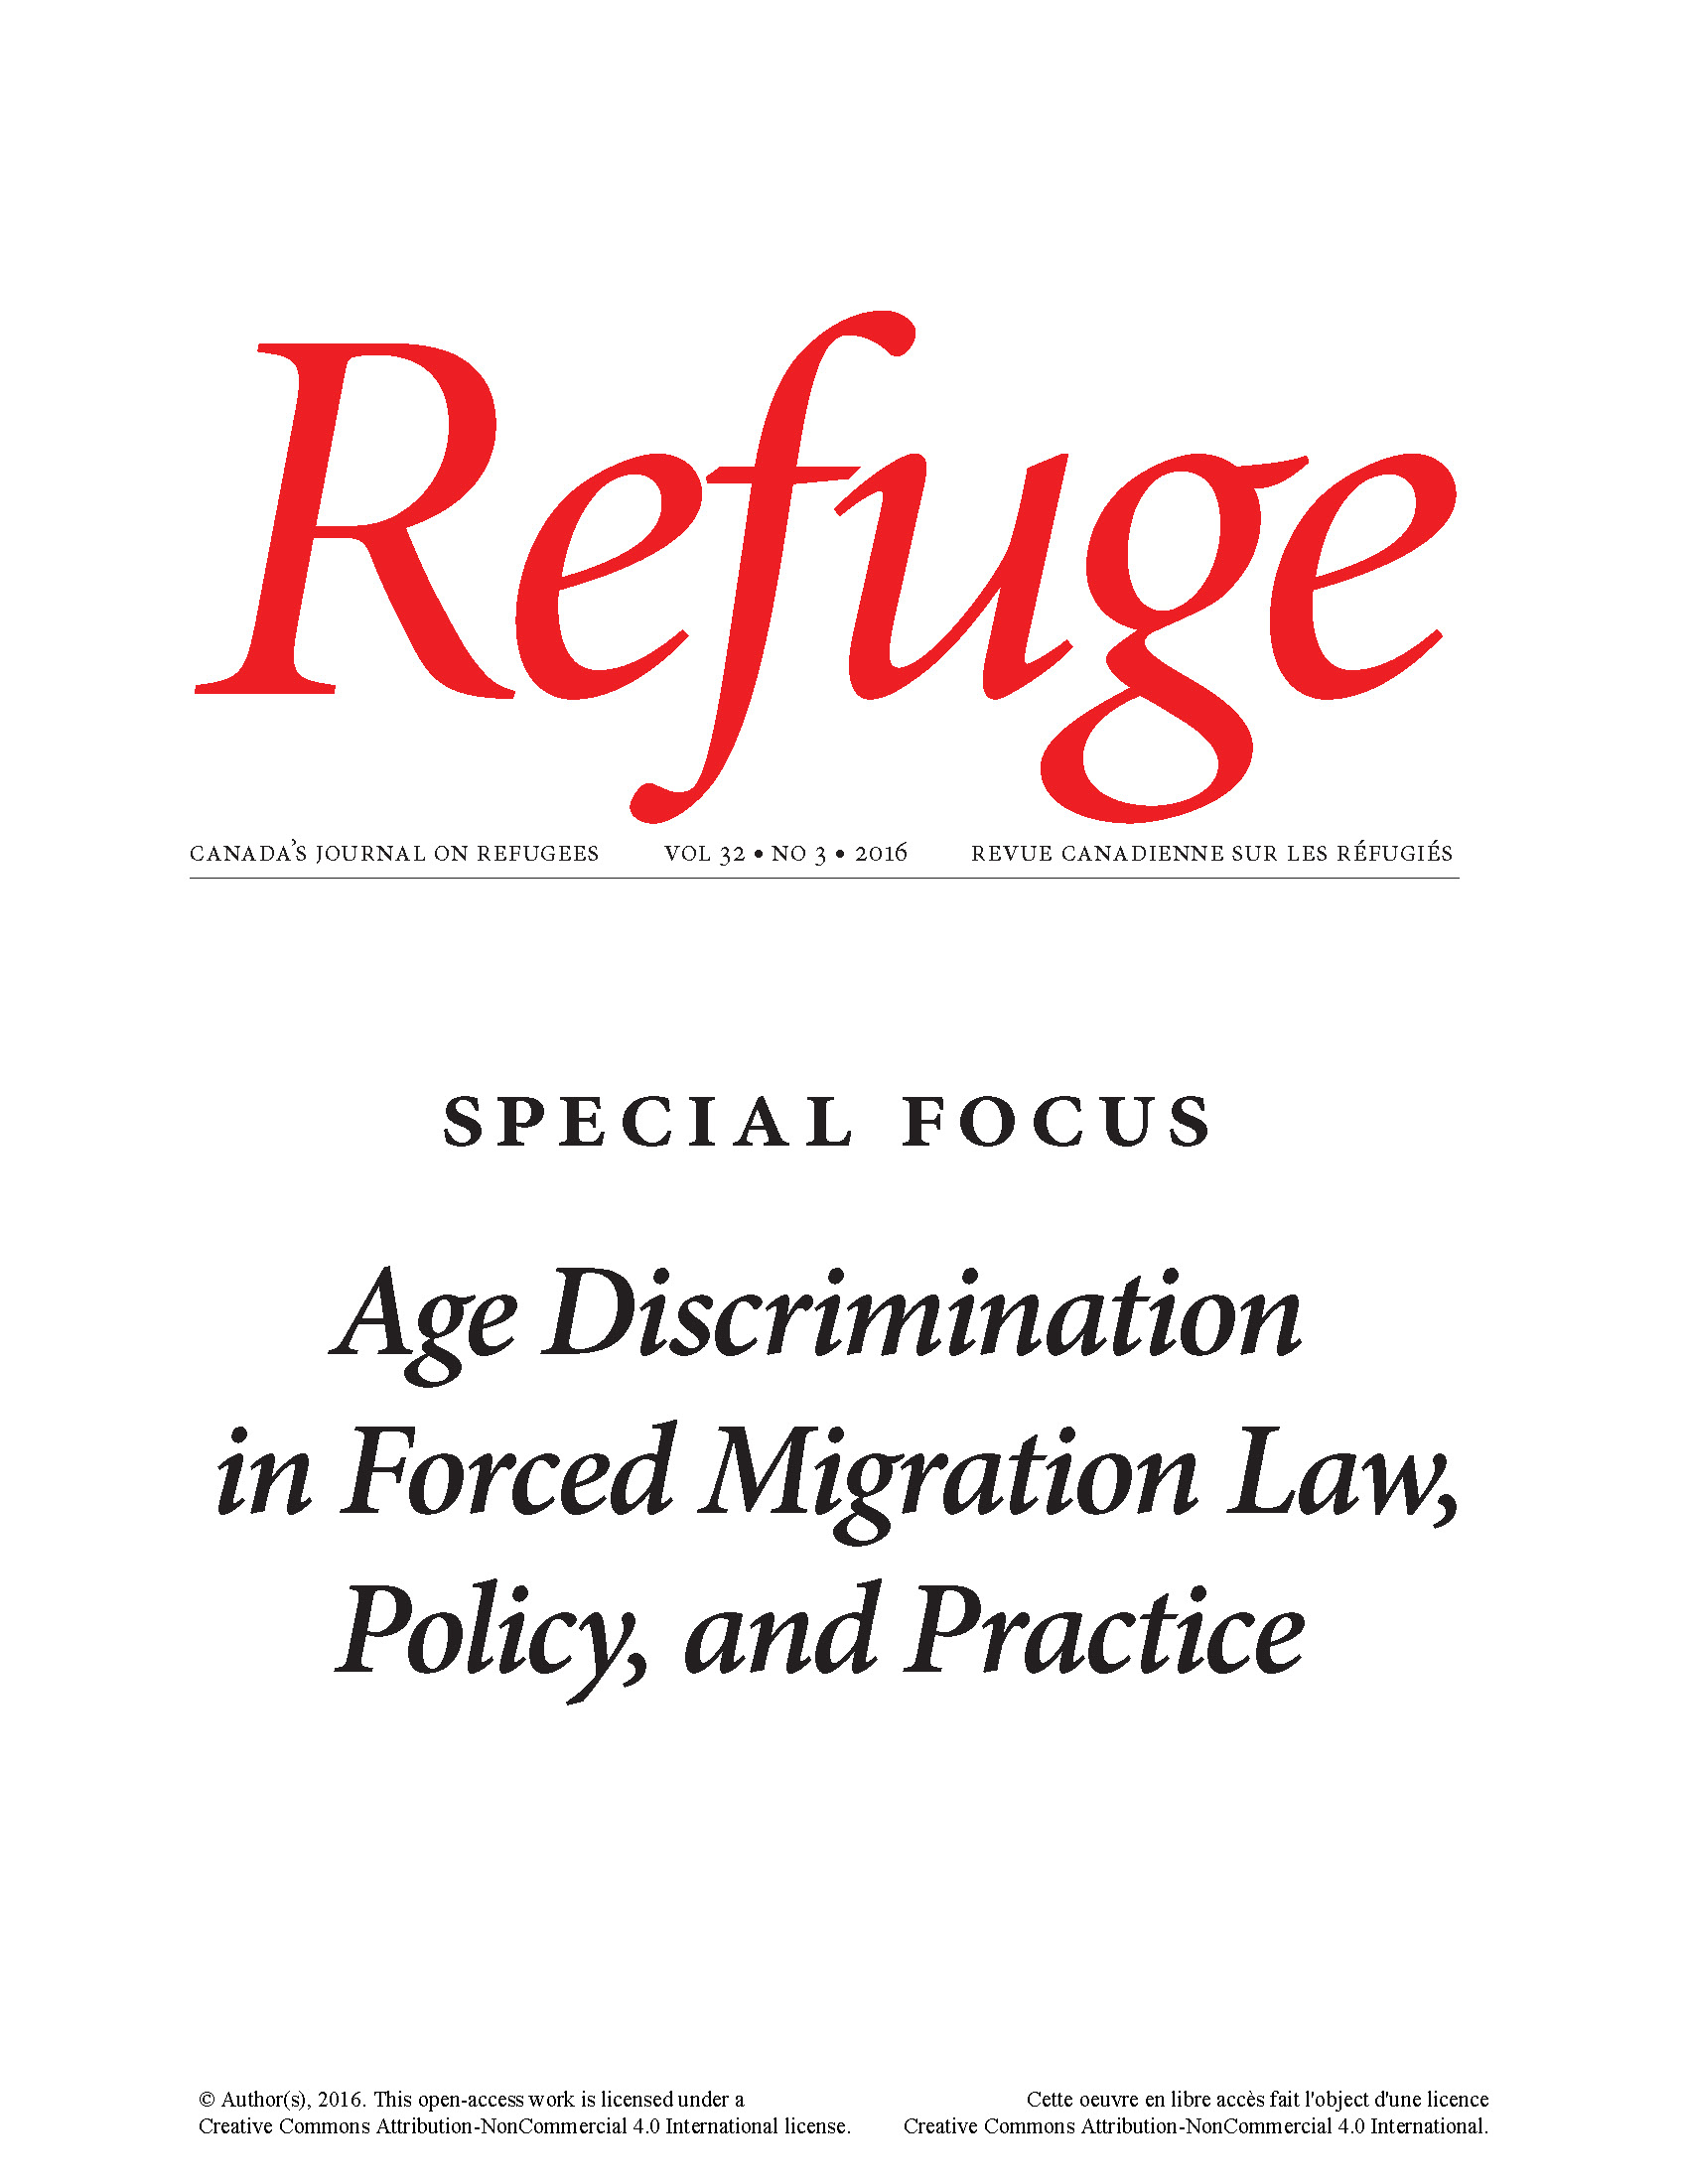 cover image of Refuge issue with special focus on age discrimination